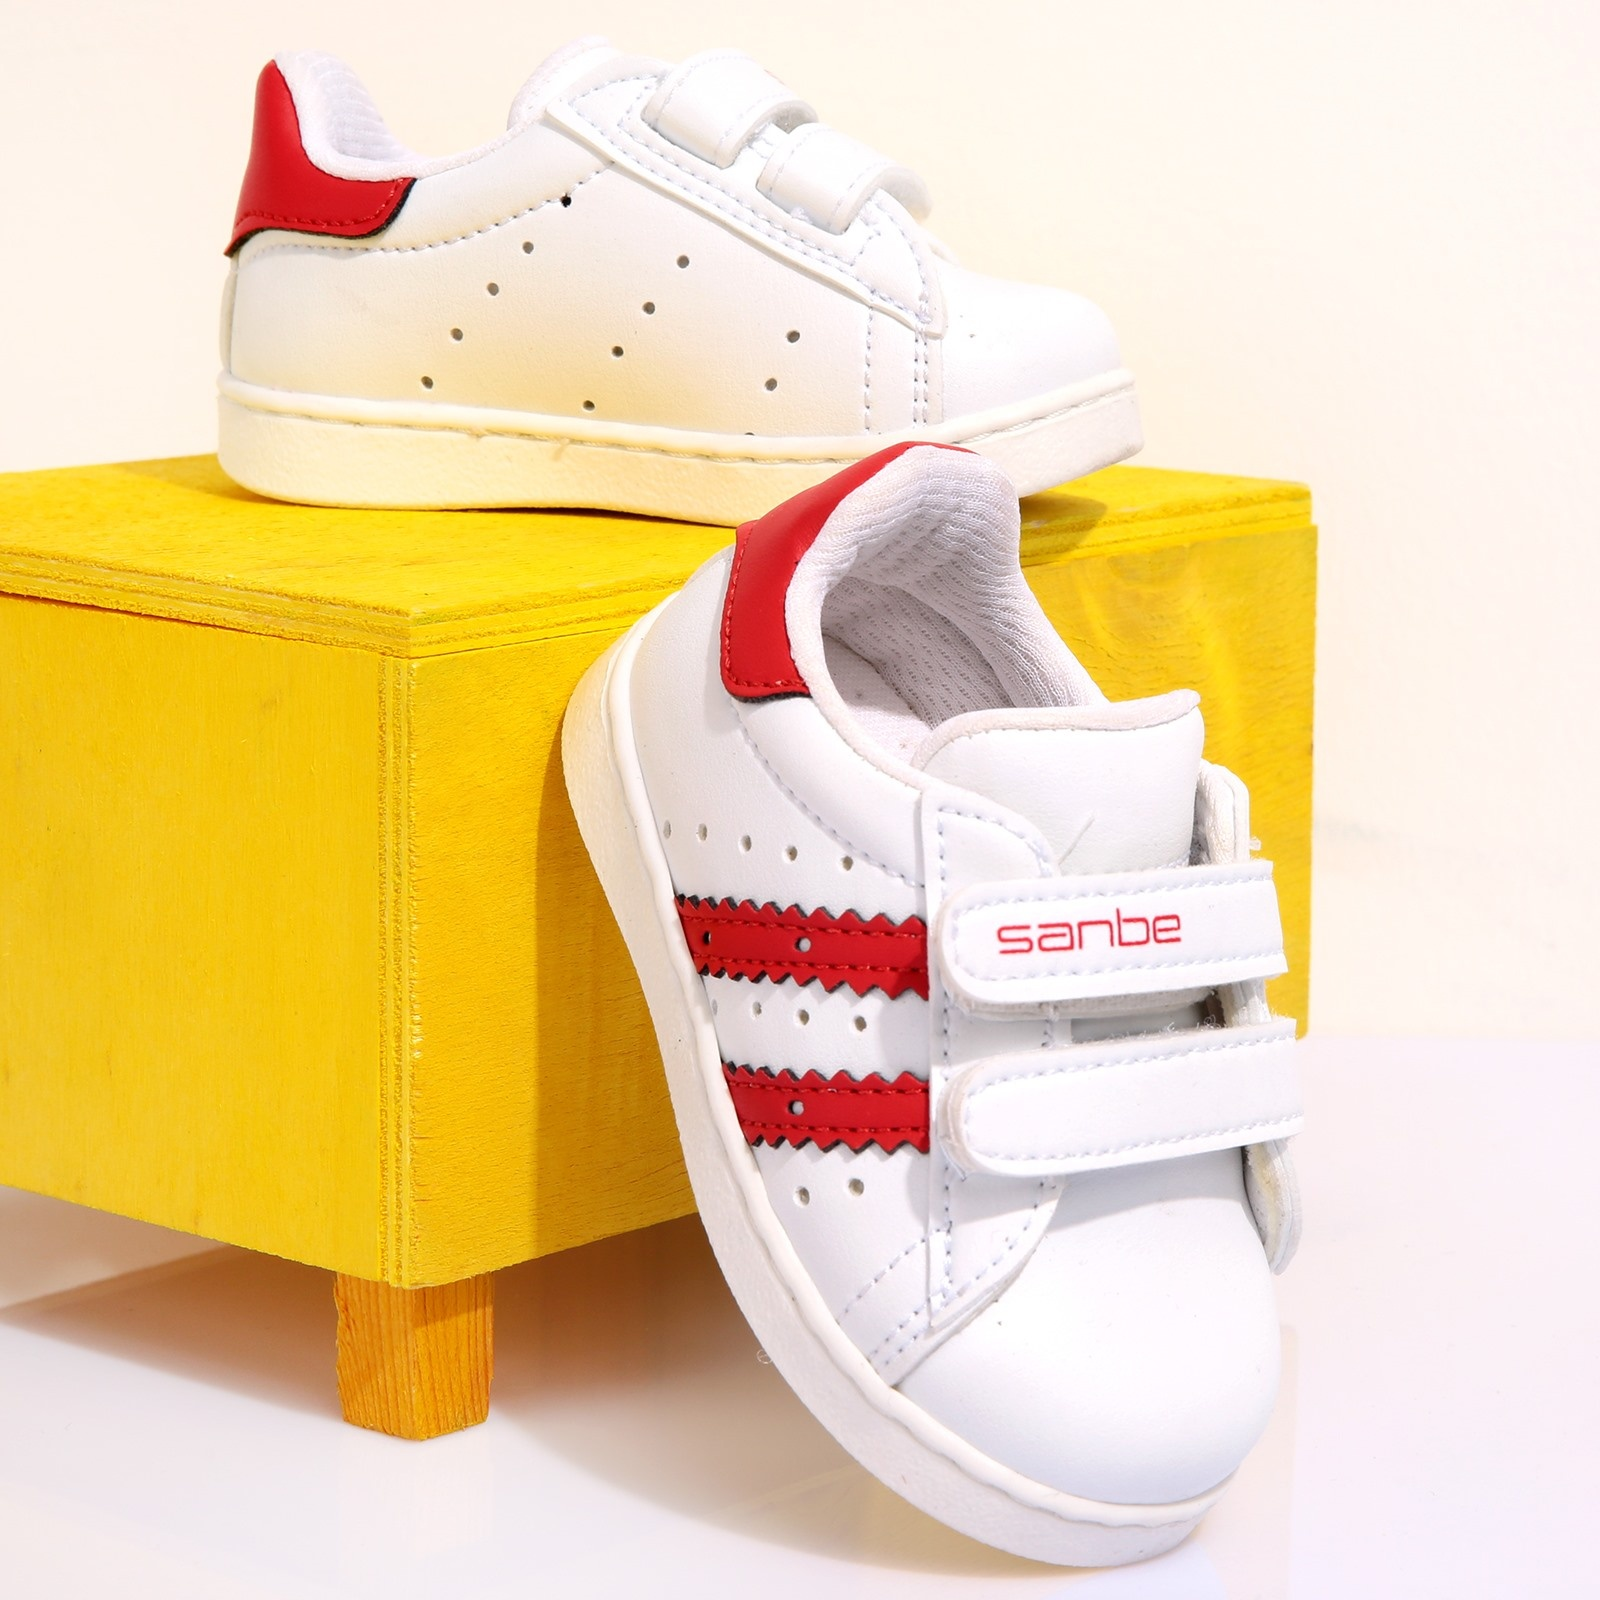 Ebebek Sanbe My Baby's First Step Shoes